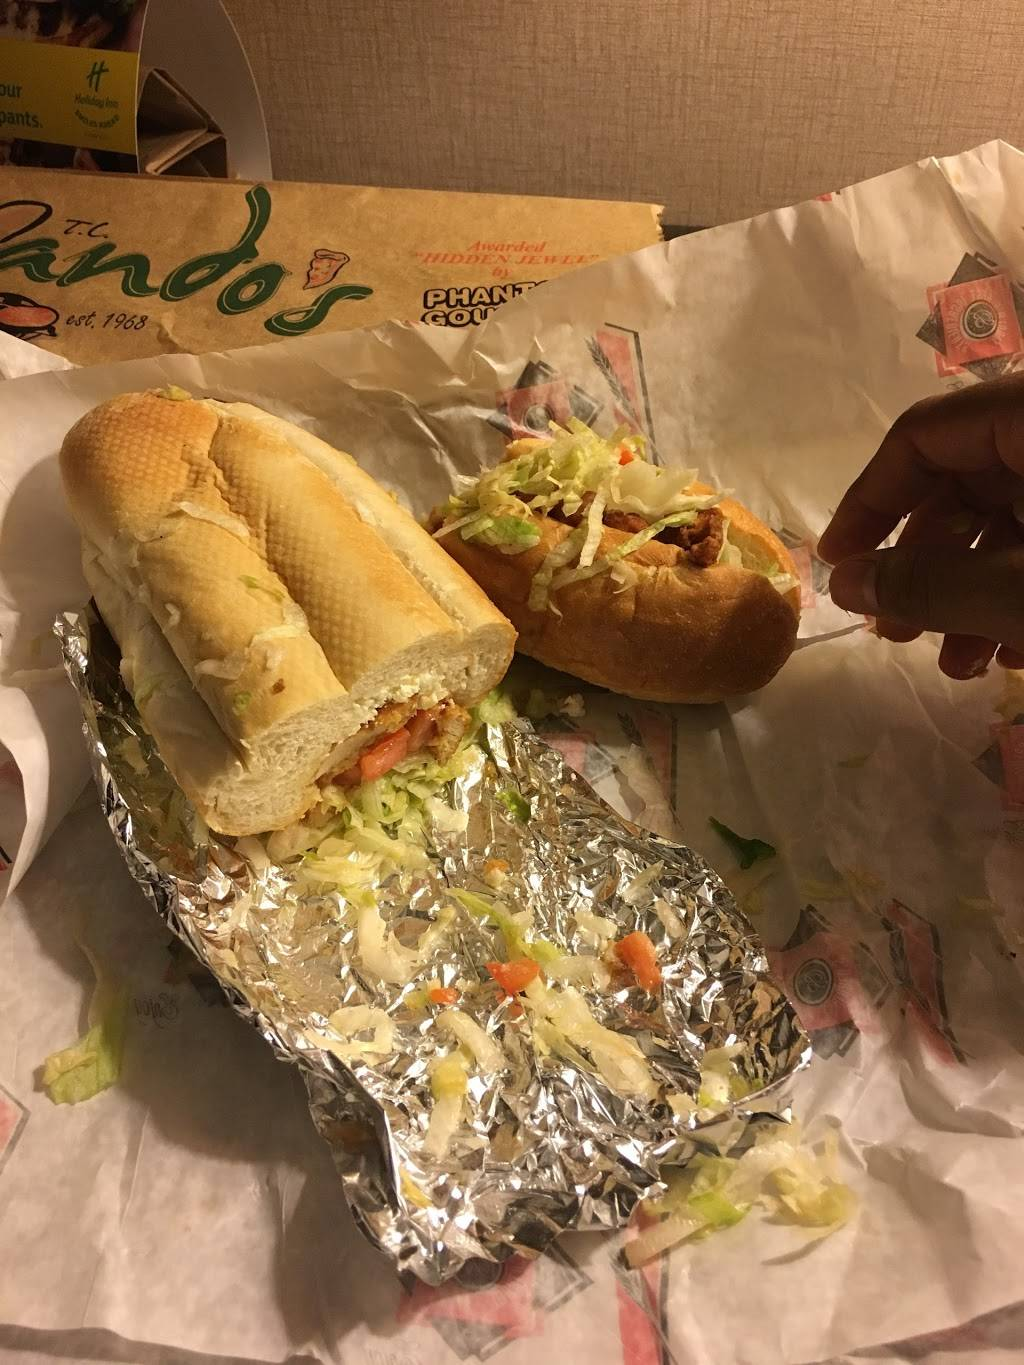 TC Landos Subs and Pizzeria | meal takeaway | 127 Main St, Hudson, MA 01749, USA | 9785689432 OR +1 978-568-9432